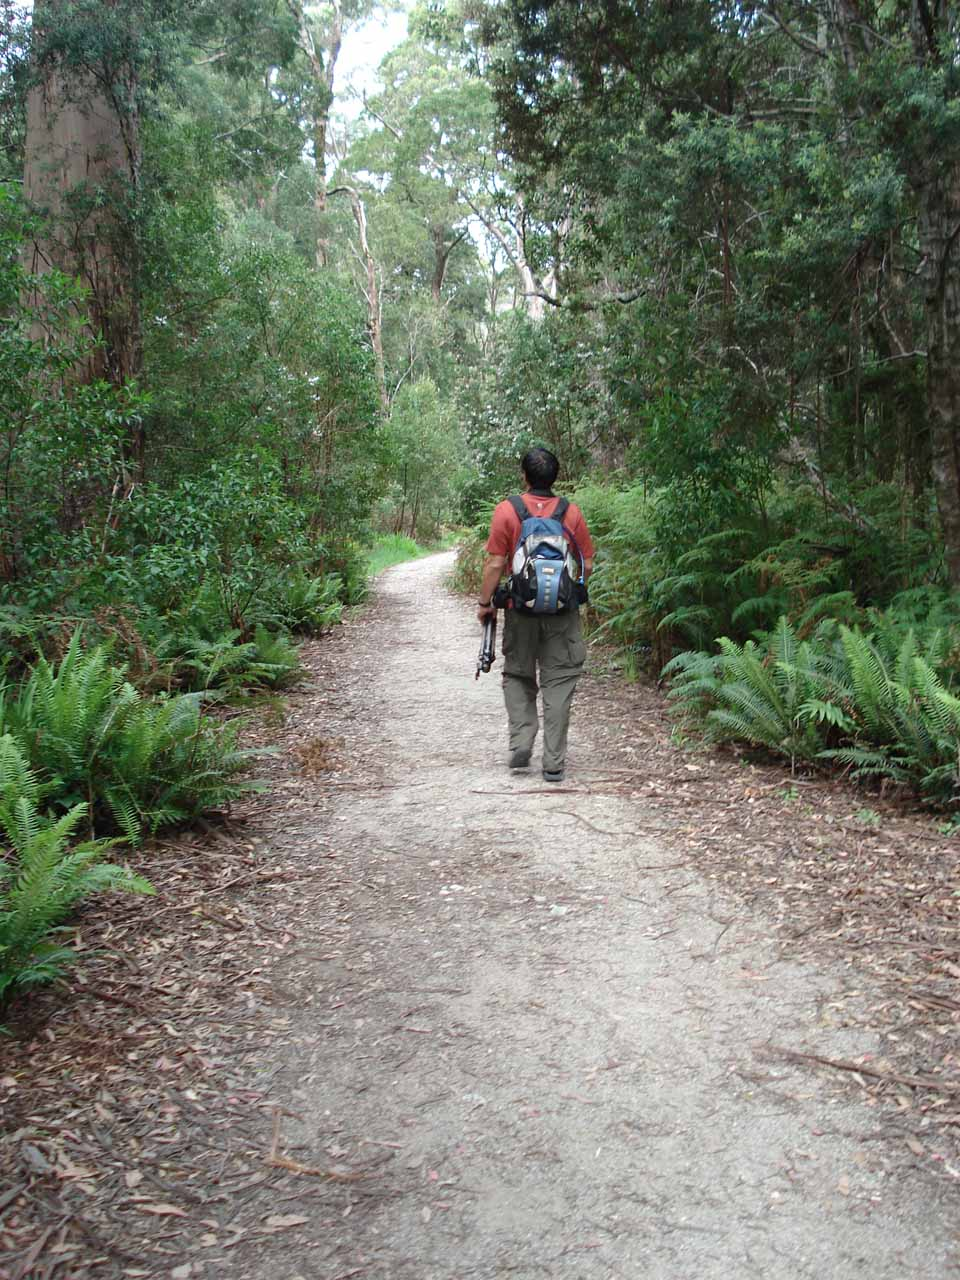 That's me on the lush forest walk towards Hogarth Falls back in late November 2006